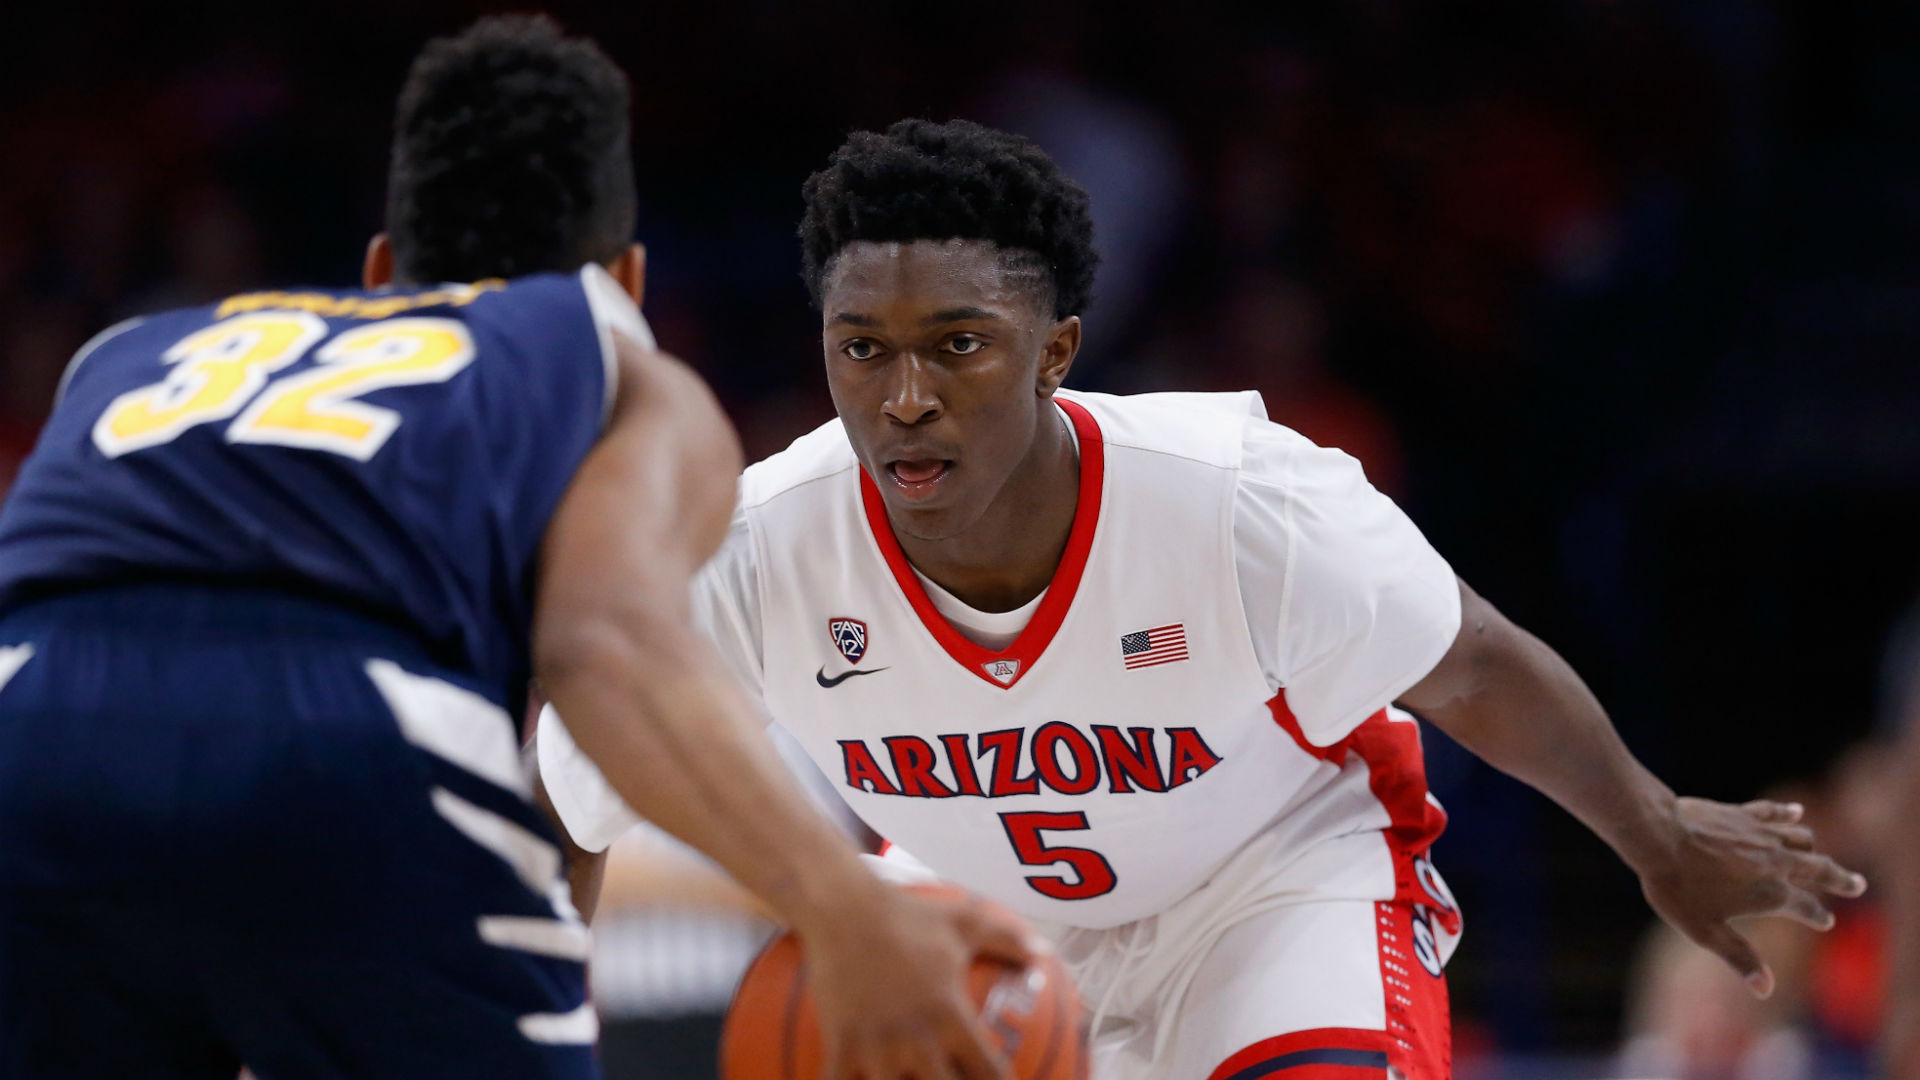 College basketball betting lines and picks – Utah, Arizona lay double digits in look-ahead spots